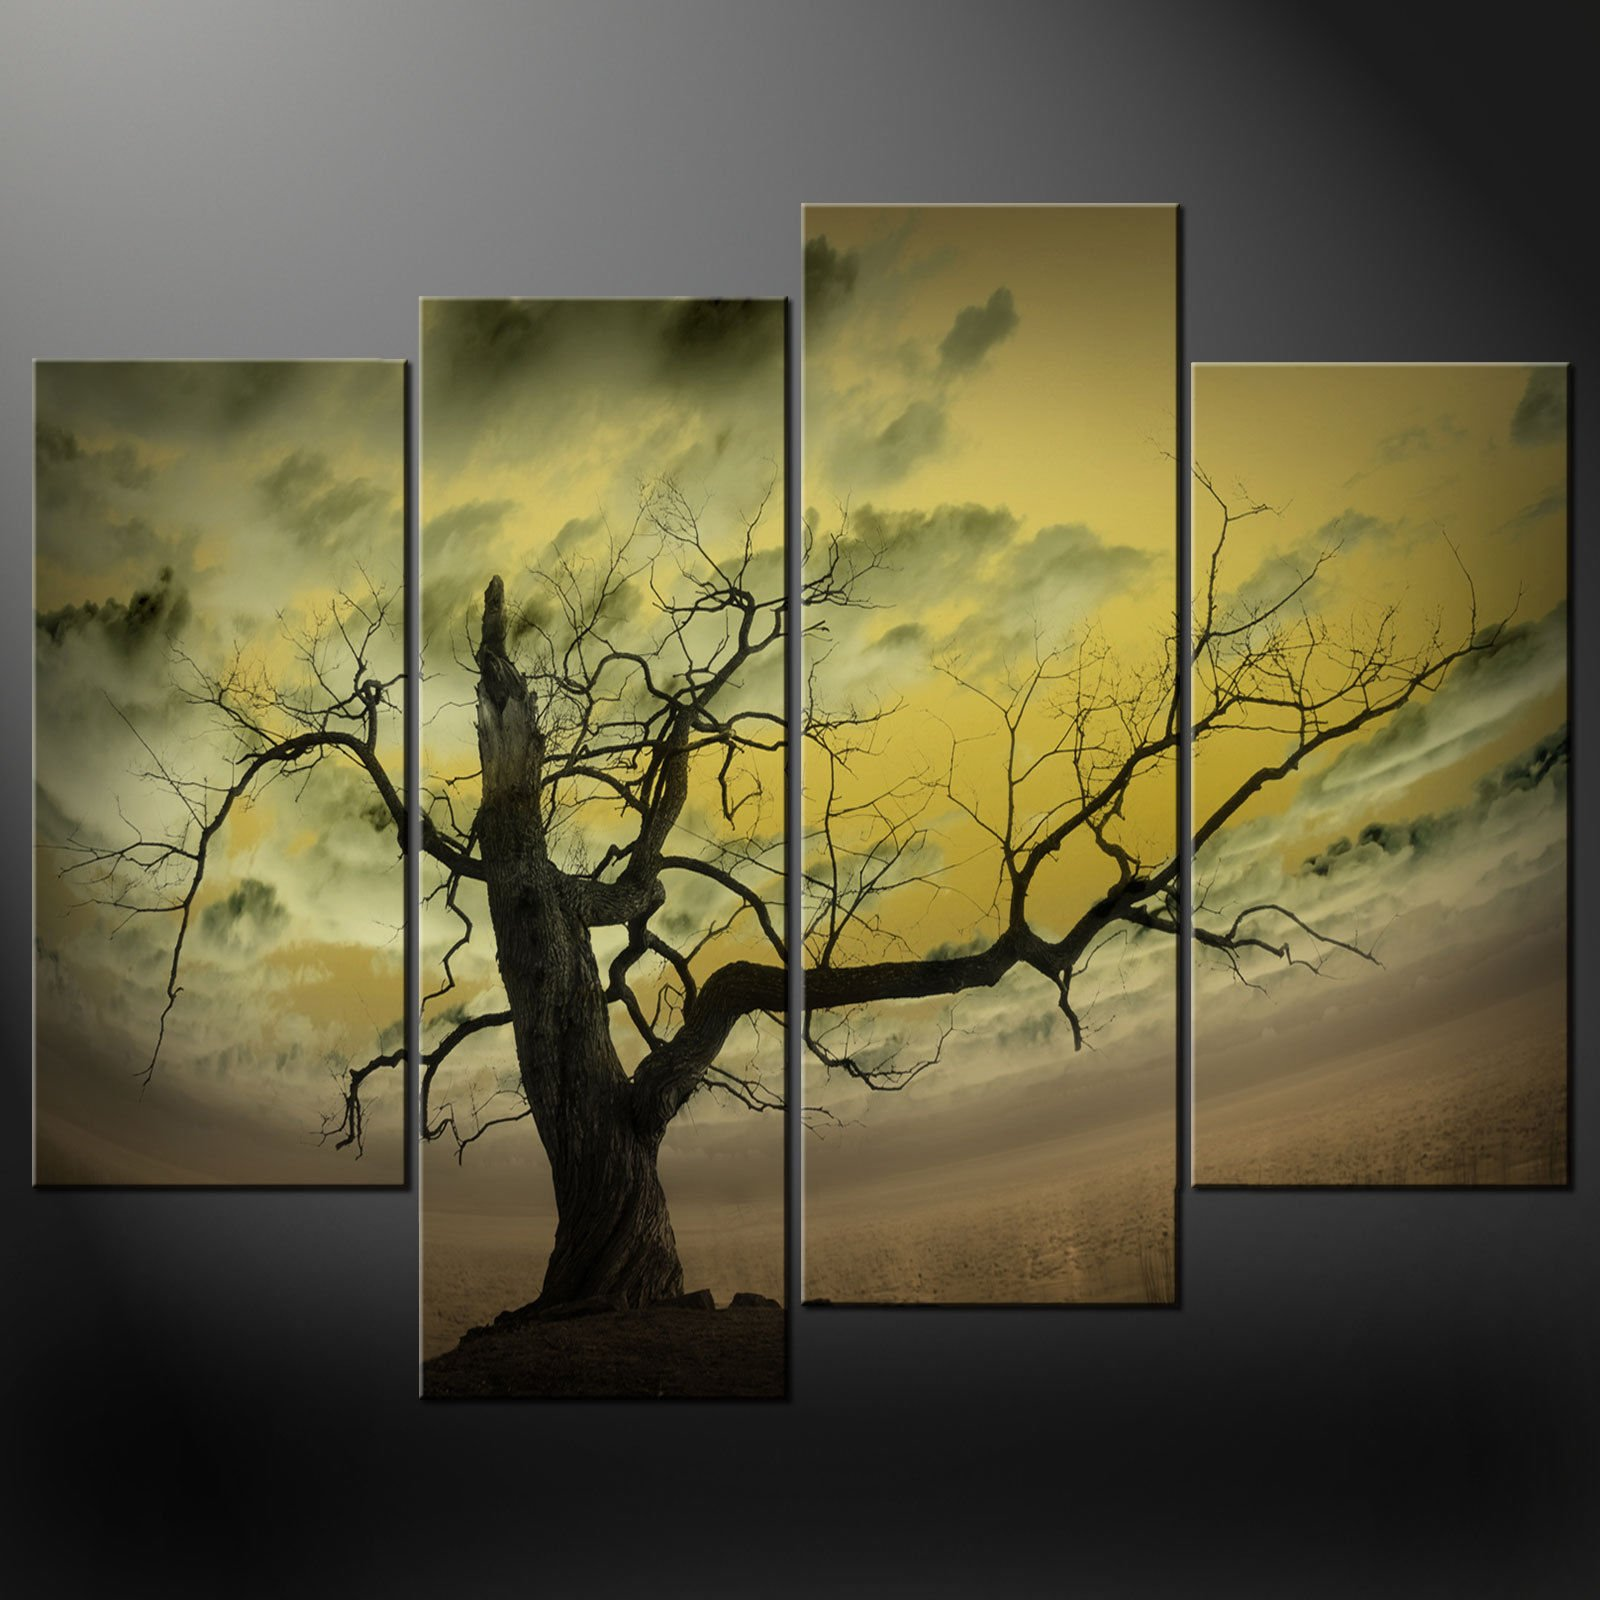 Wall Prints Canvas Print Pictures High Quality Handmade Free Next